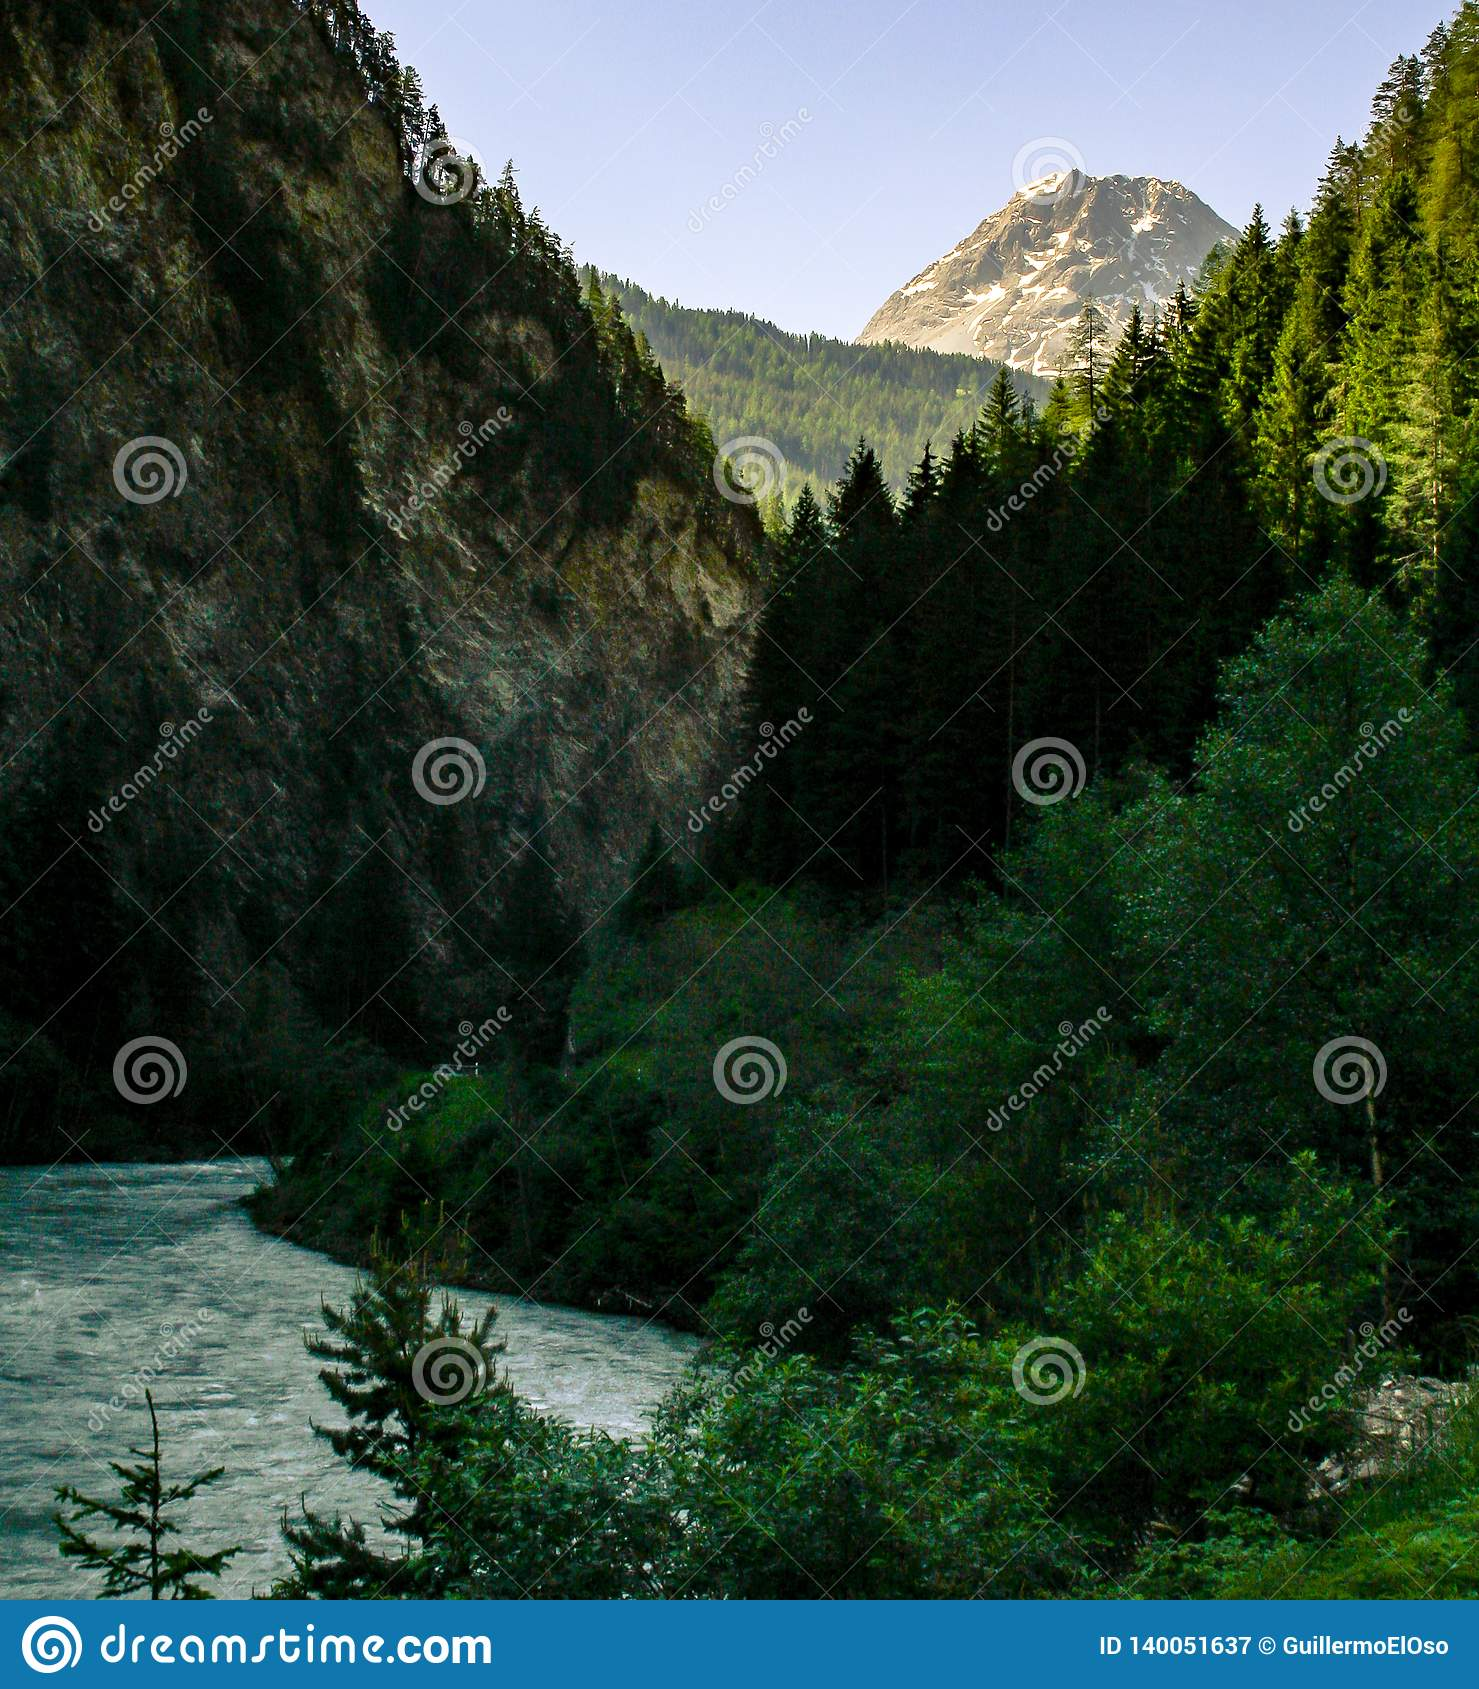 Big view on the mountain and river